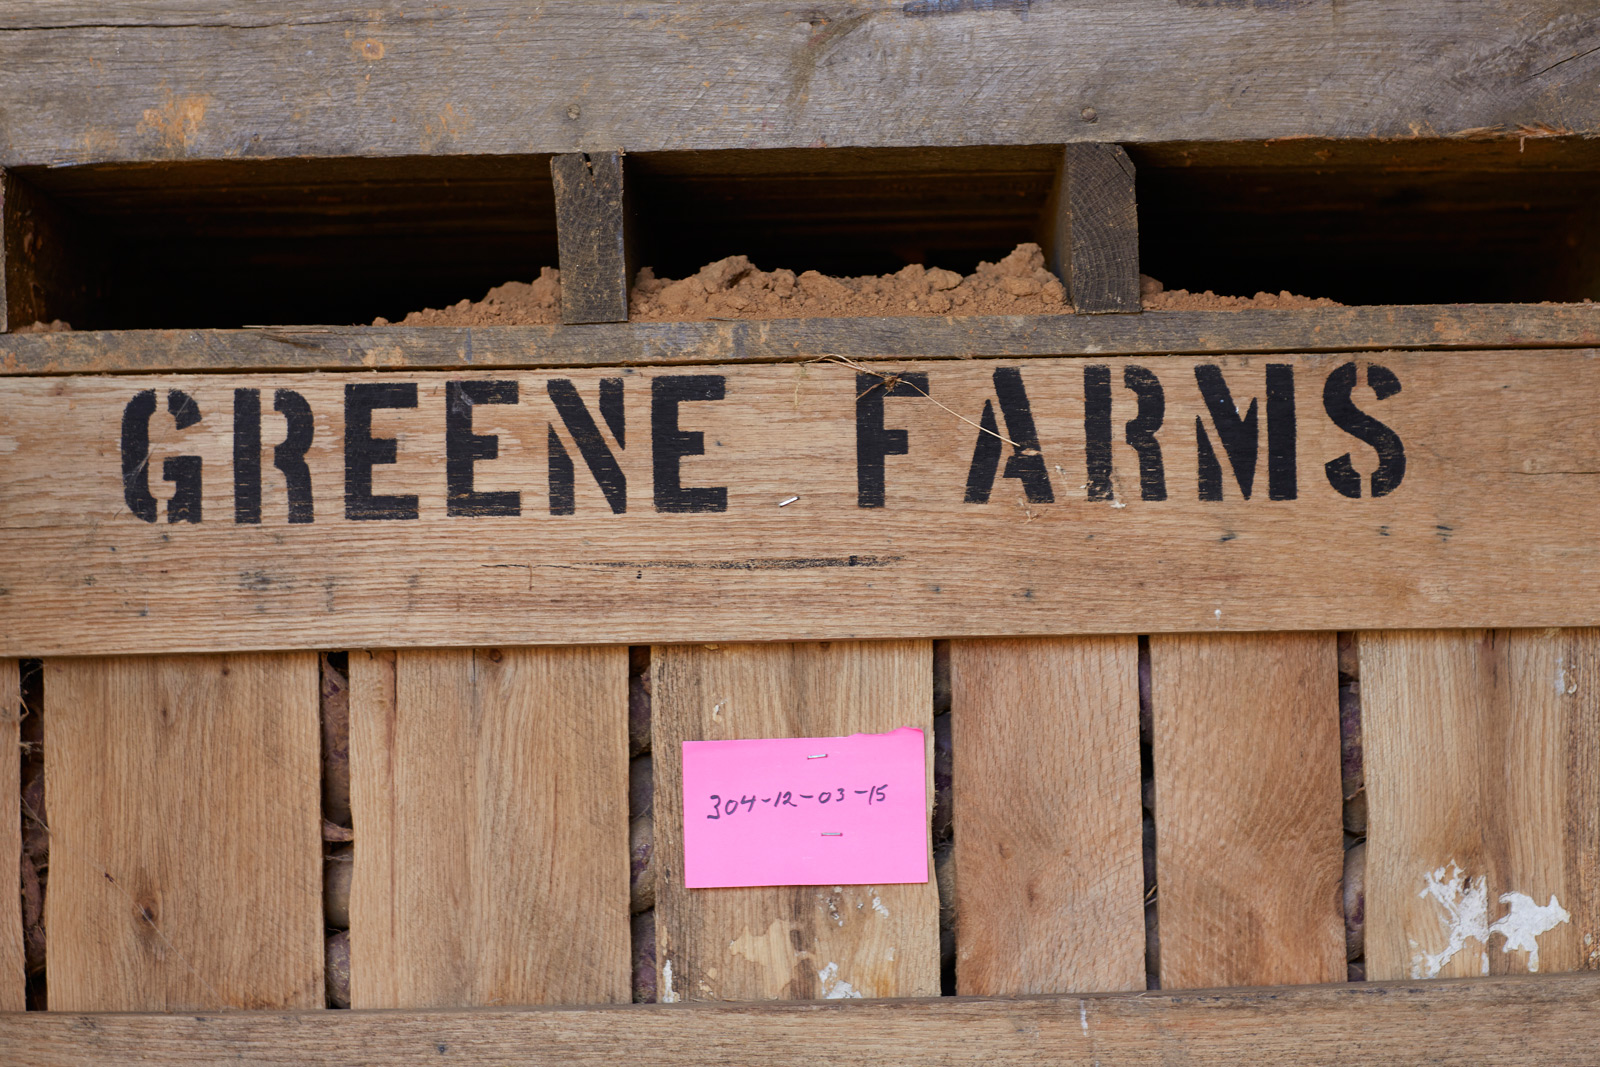 Greene Farms